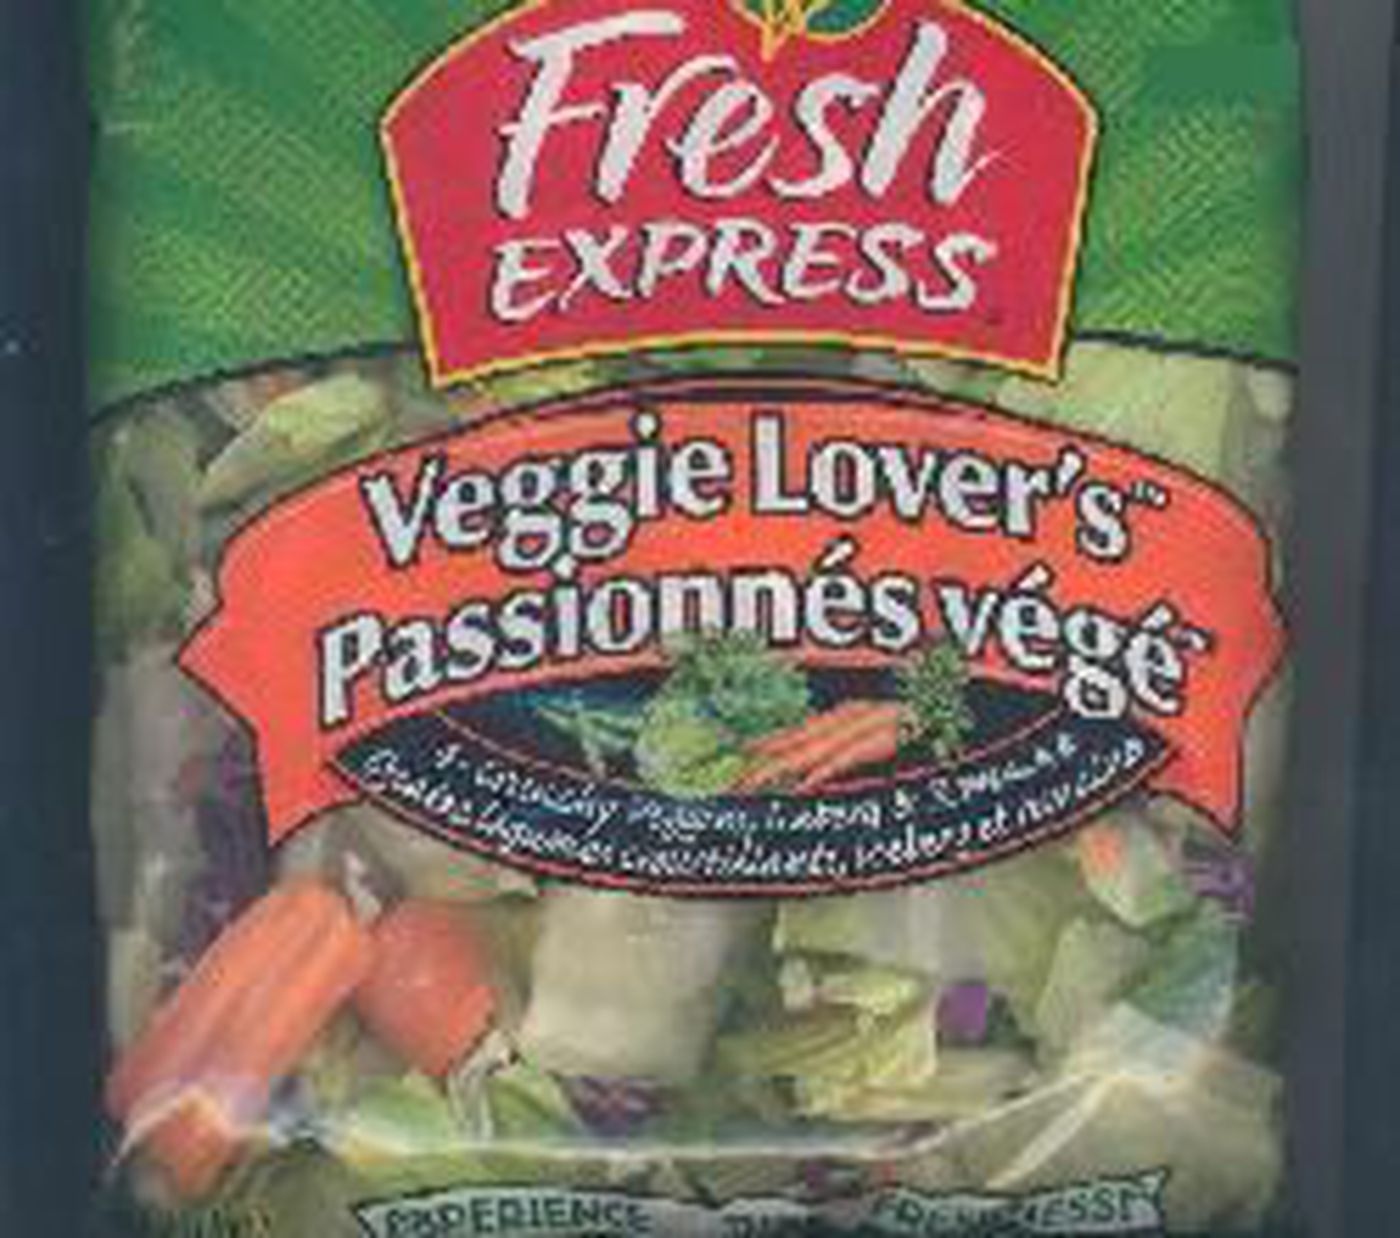 Fresh Express announces recall on bagged salad